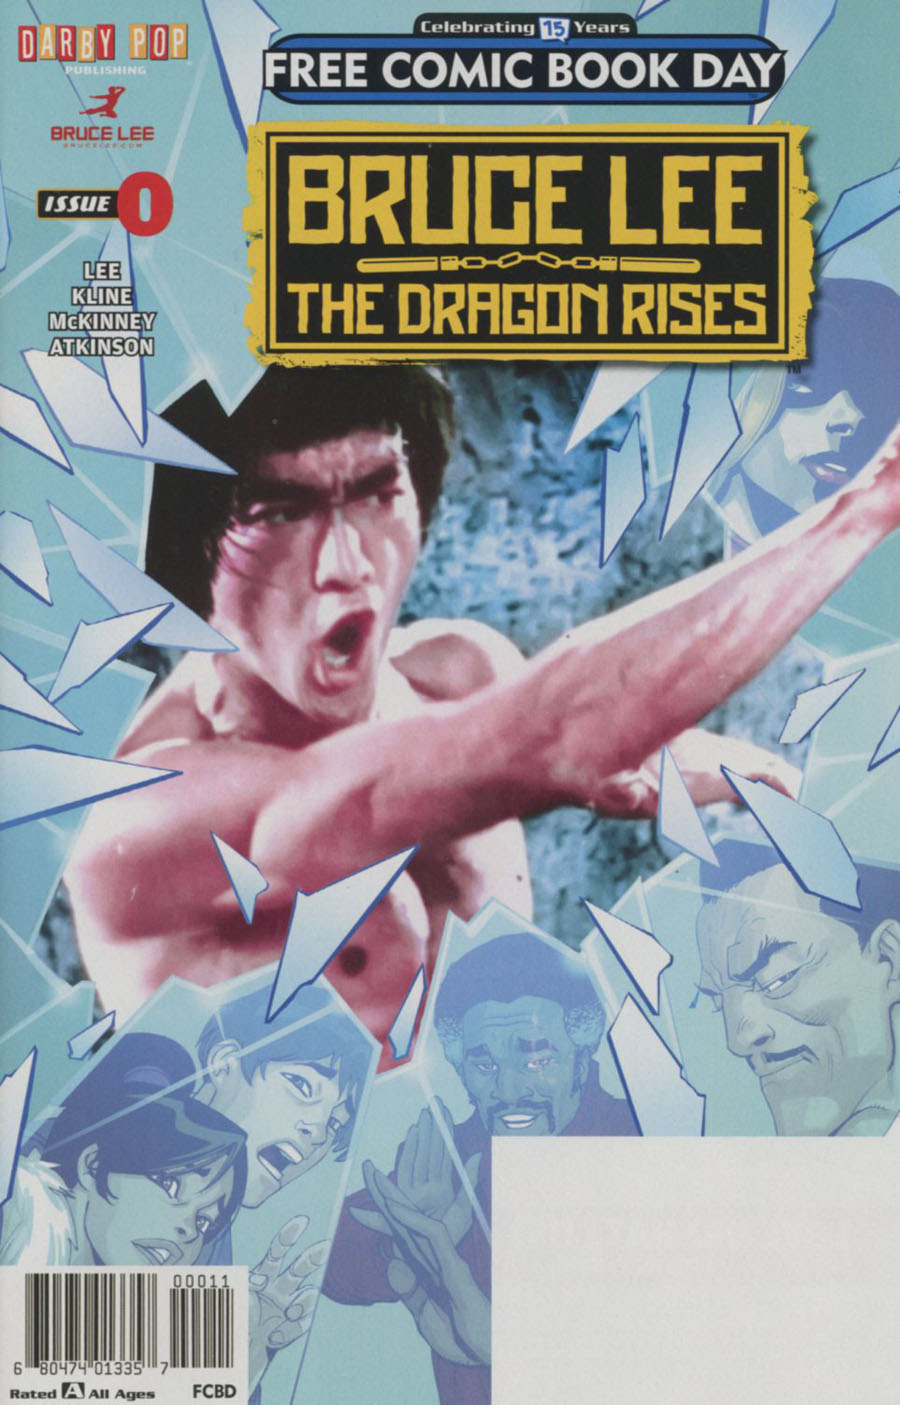 Bruce Lee Dragon Rises #0 FCBD 2016